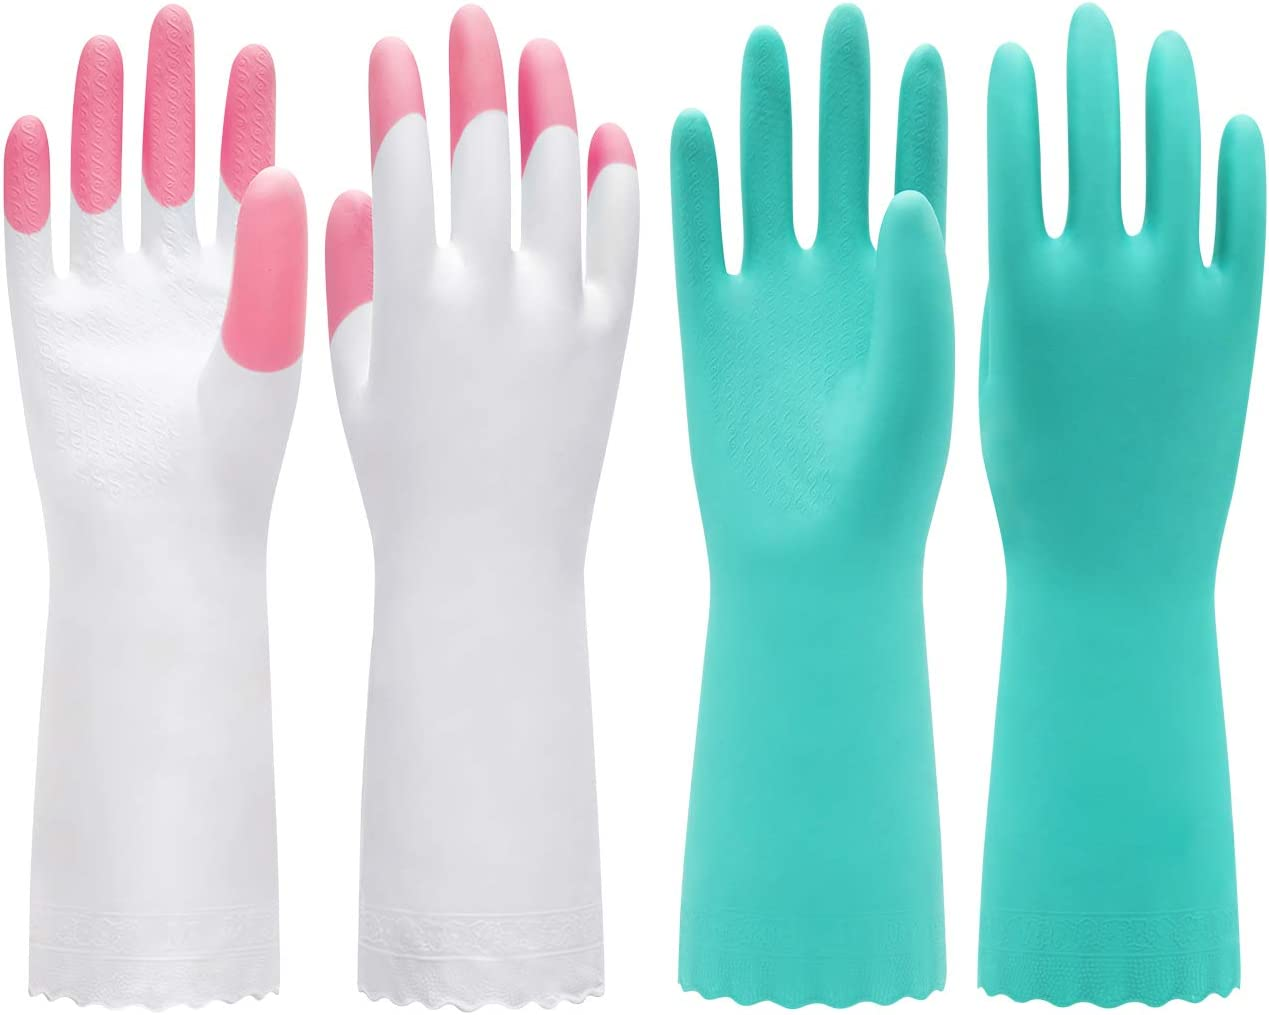 Pacific PPE 2 Pack Household Glove Mixed Package Reusable Cleaning Dishwashing Gloves-Latex Free Waterproof PVC Gloves for Kitchen,Gardening Gloves Unlined and Flocked with Cotton Liner(Pink&Green,M)